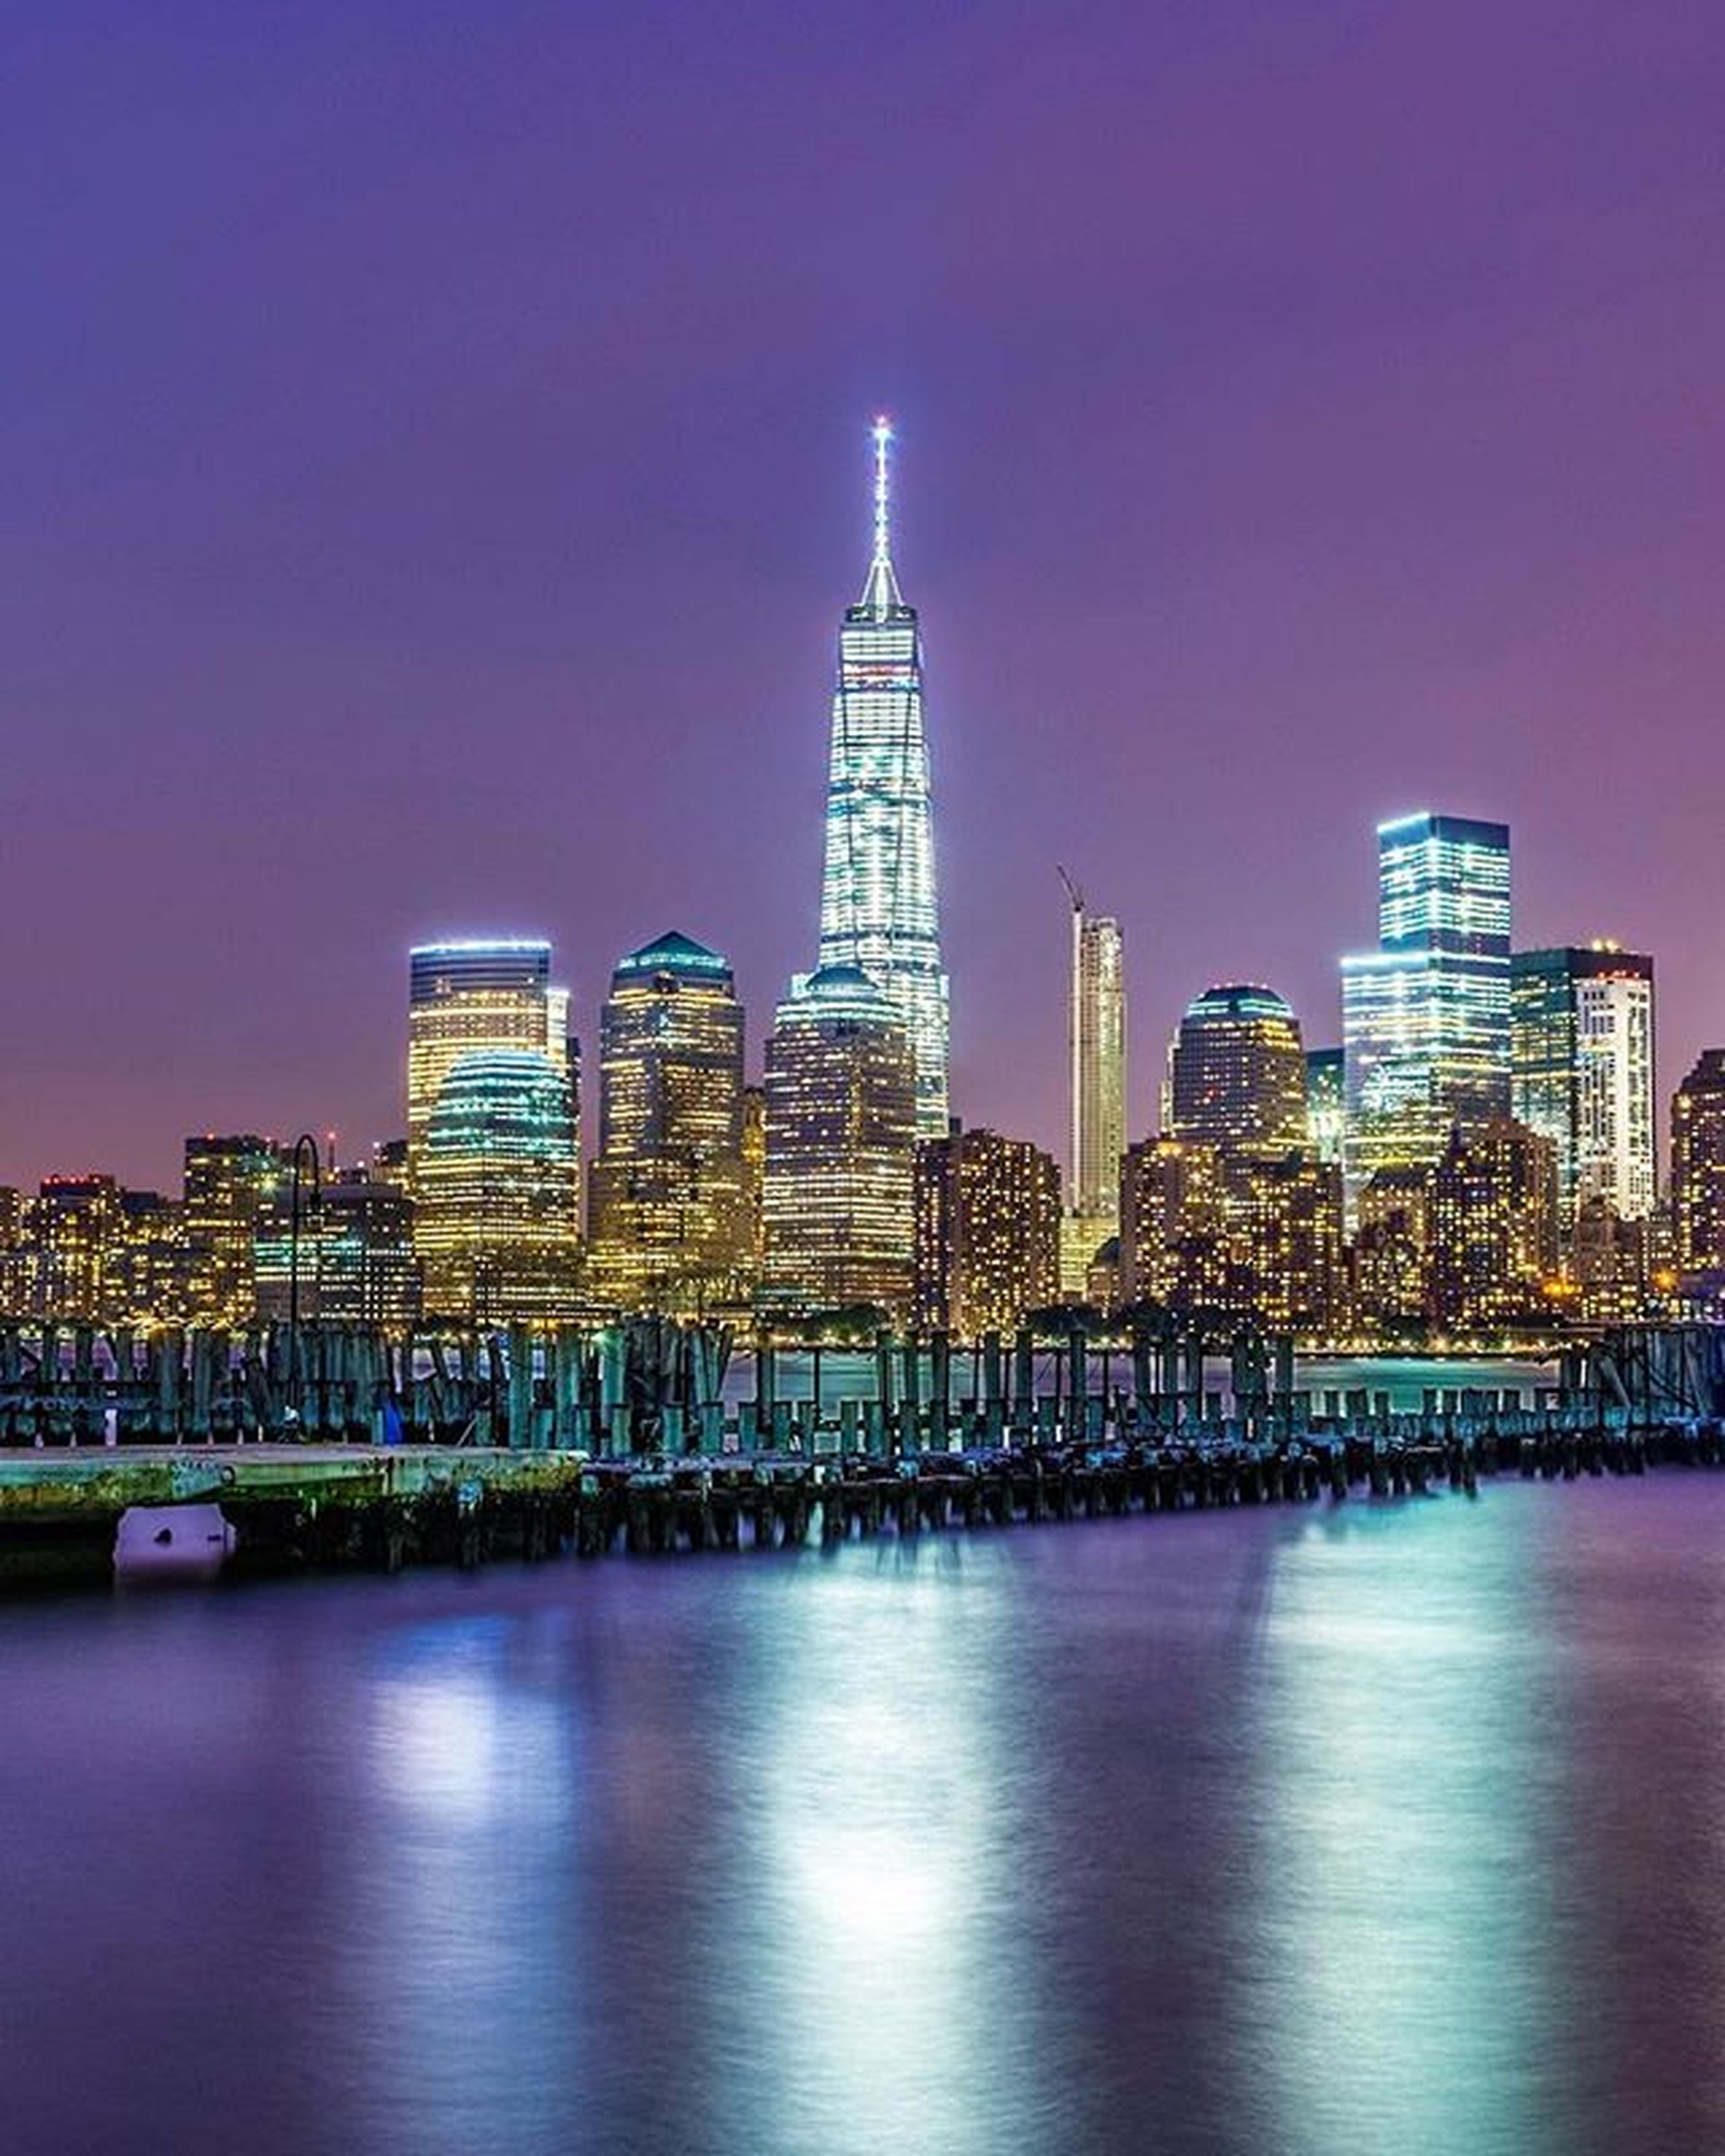 architecture, illuminated, building exterior, built structure, city, skyscraper, night, cityscape, modern, tall - high, tower, urban skyline, office building, waterfront, clear sky, water, financial district, capital cities, river, reflection